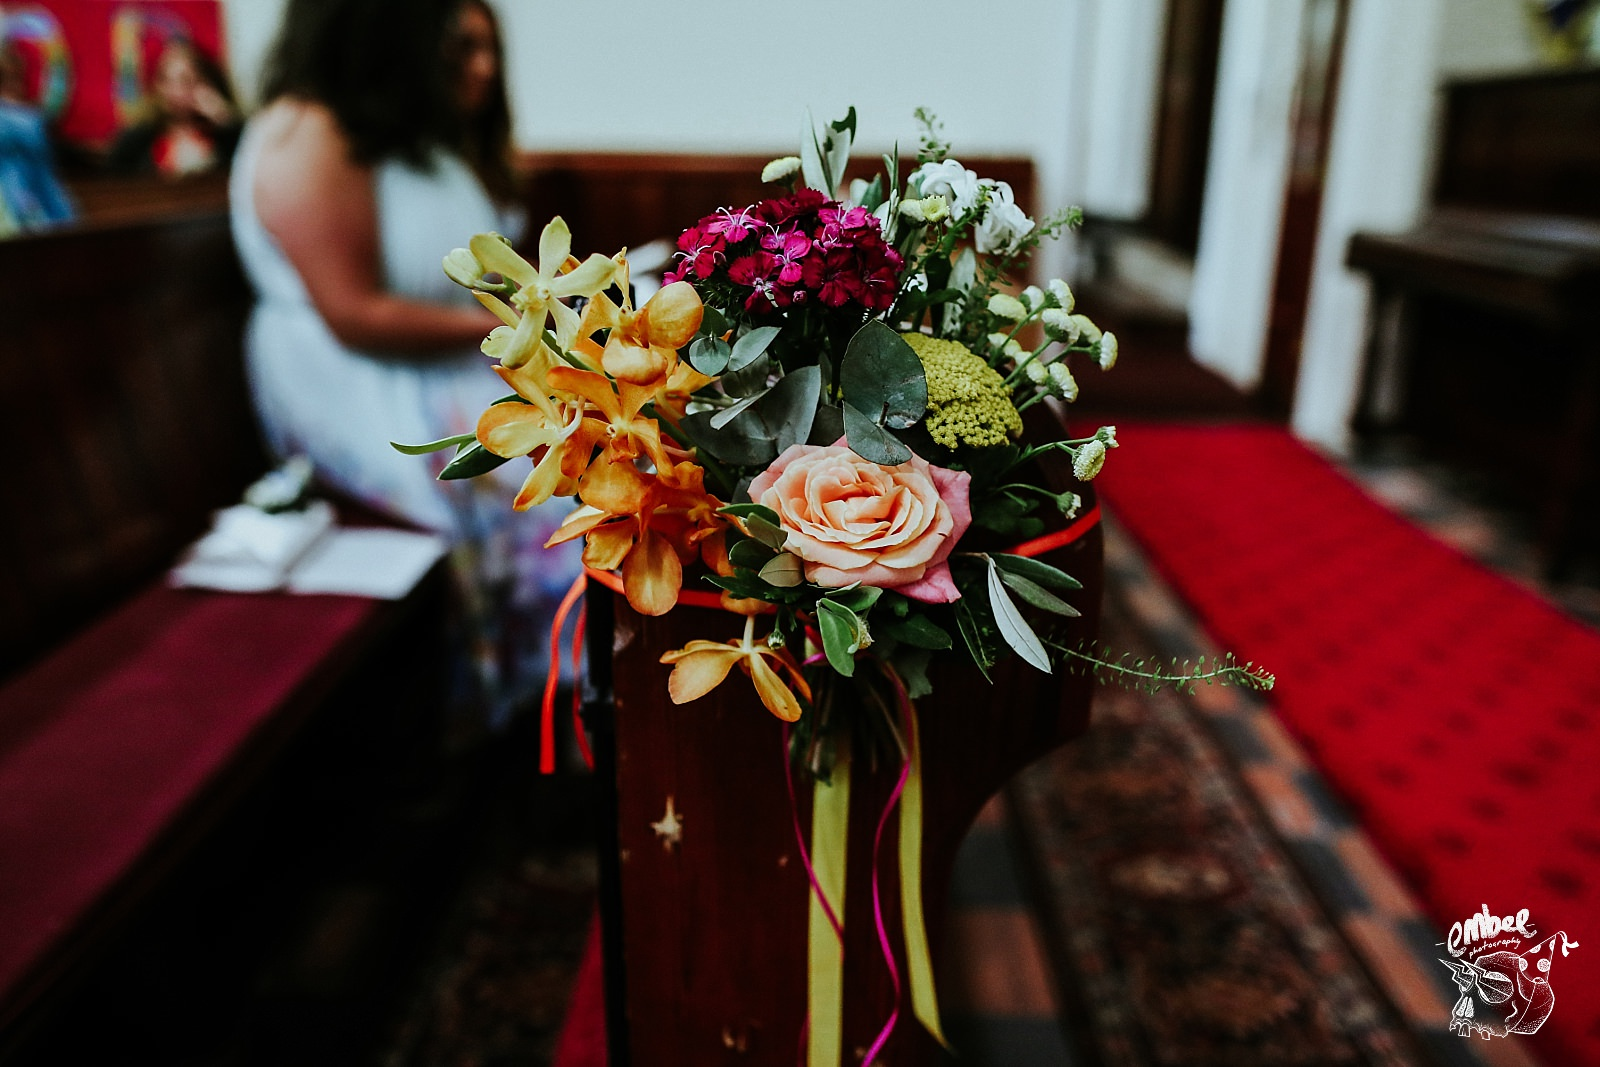 wedding flowers on end of pew in church